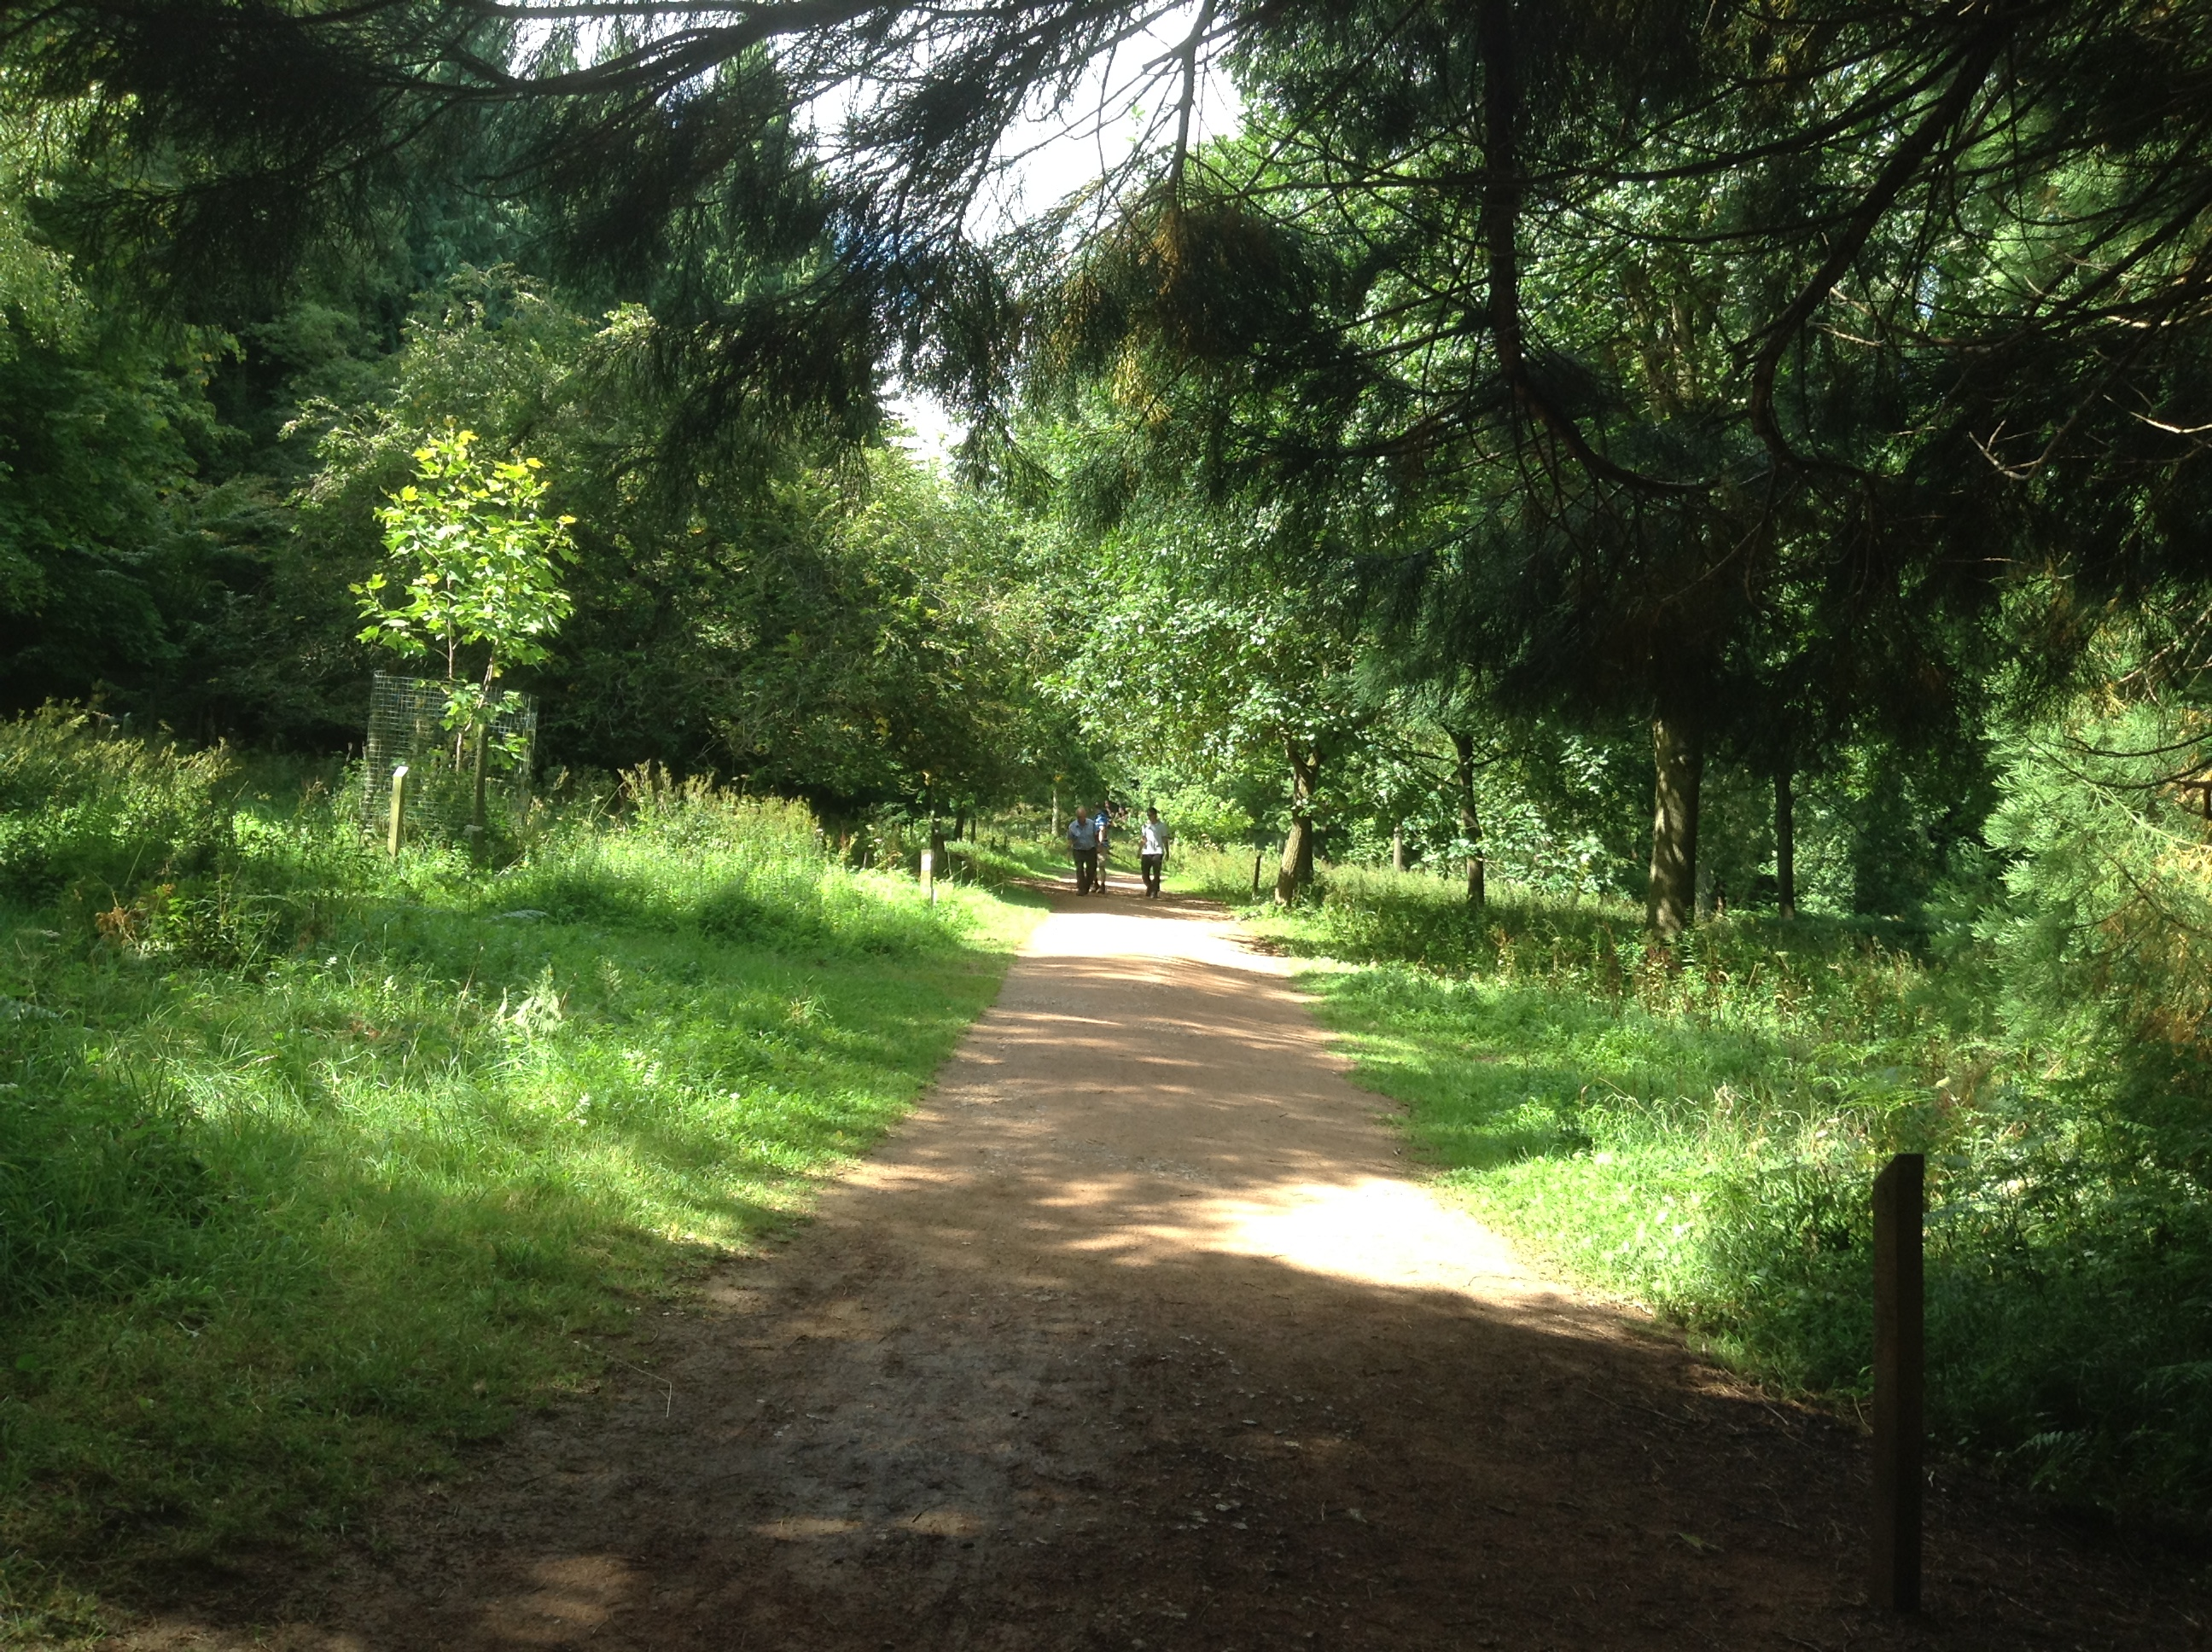 Queenswood Country Park and Arboretum, Herefordshire